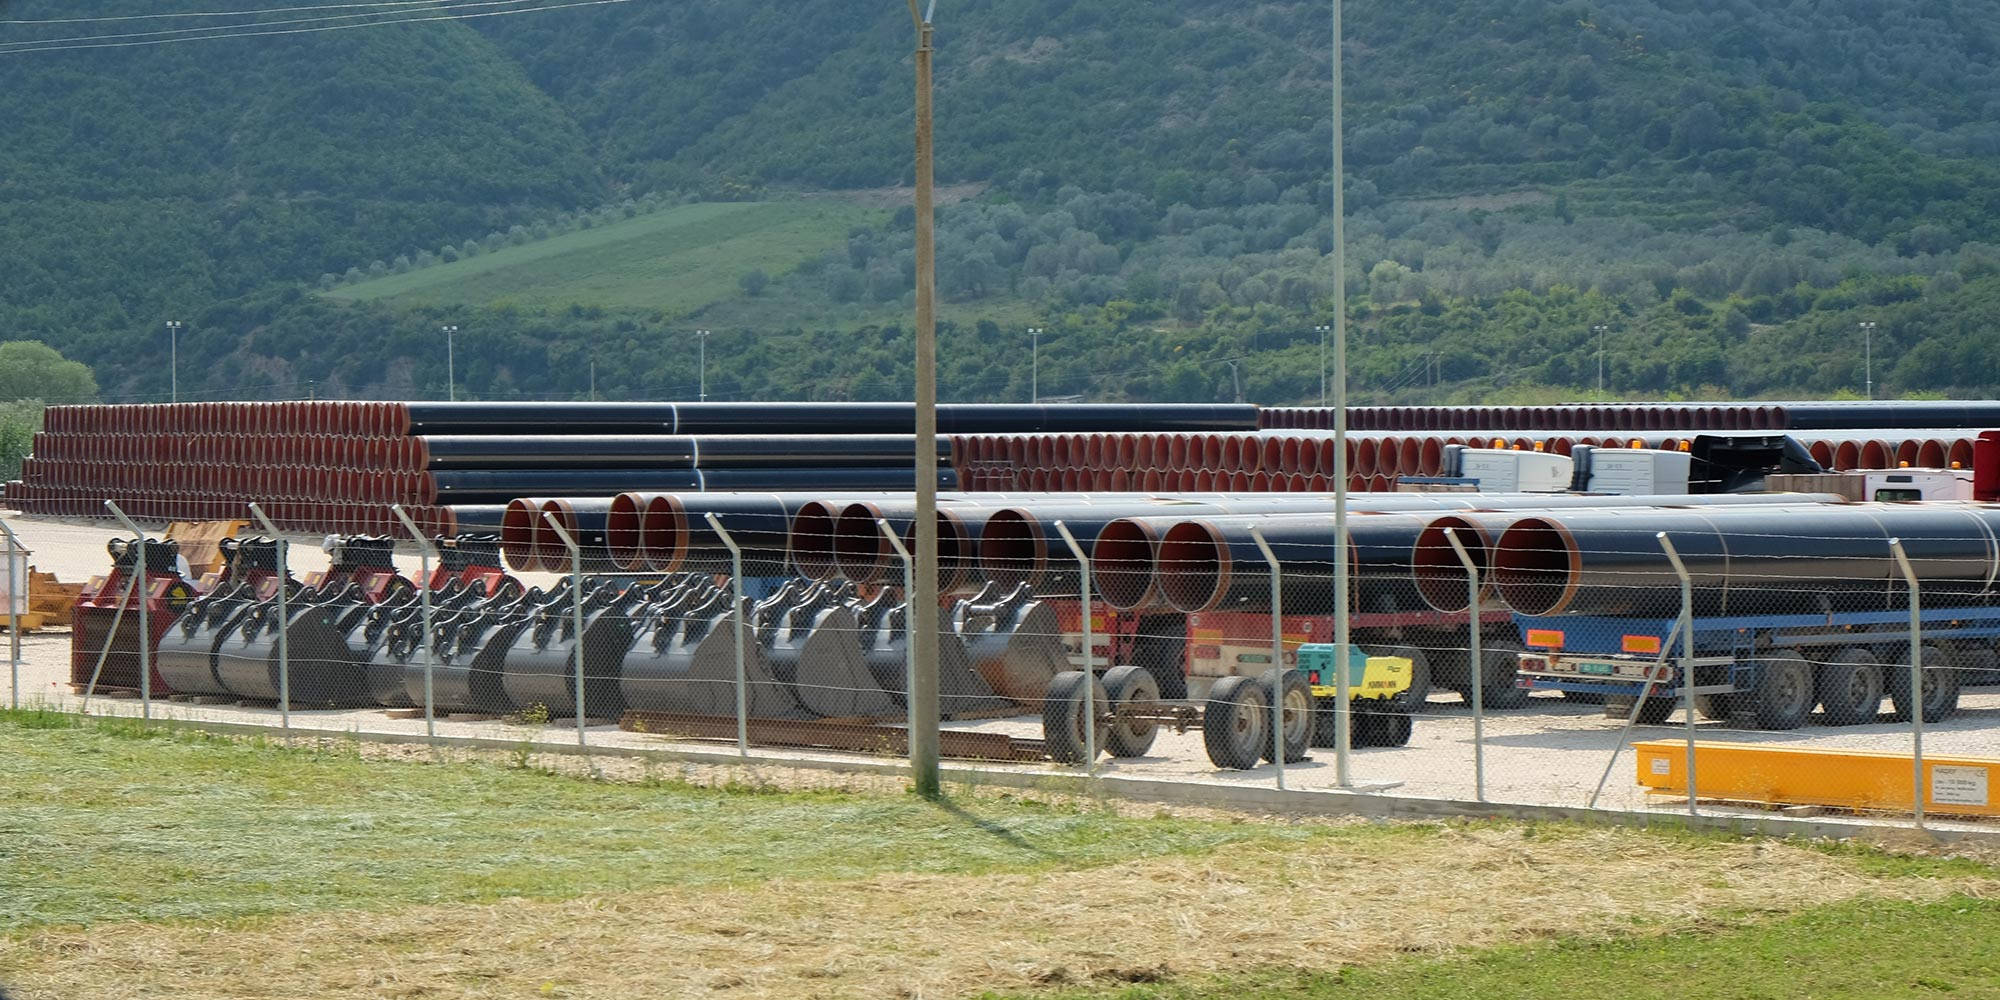 Black pipes for the Trans-Adriatic Pipeline are lying in a fenced area.